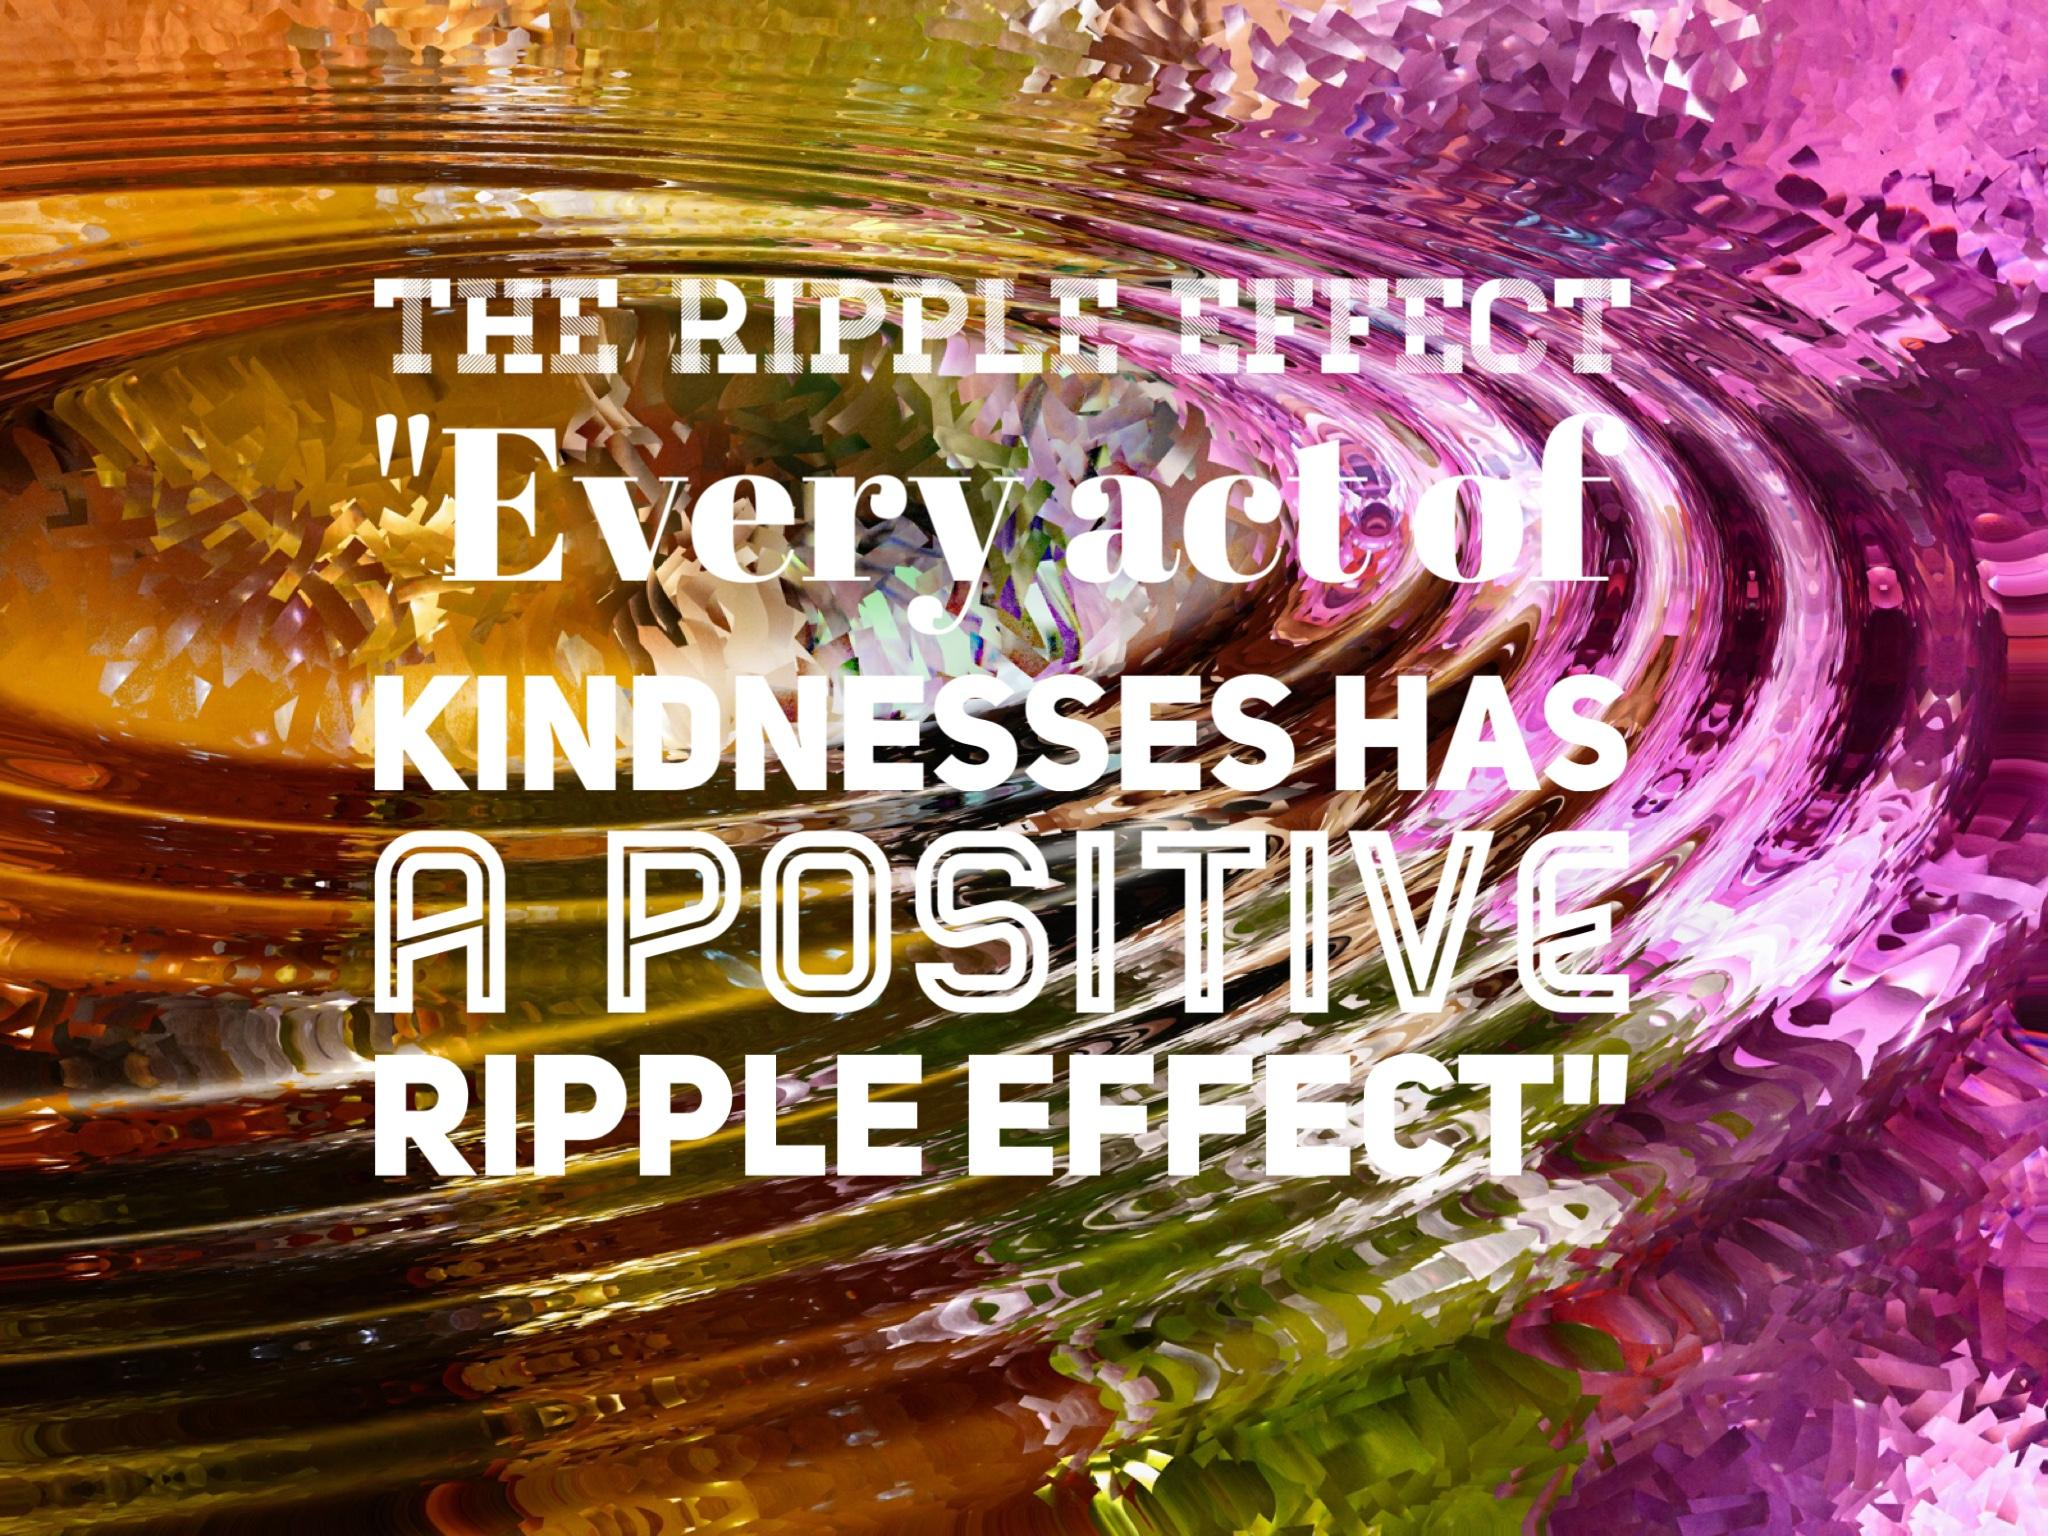 Ripple Effect, Miss Bs Resources, Butterfly Effect